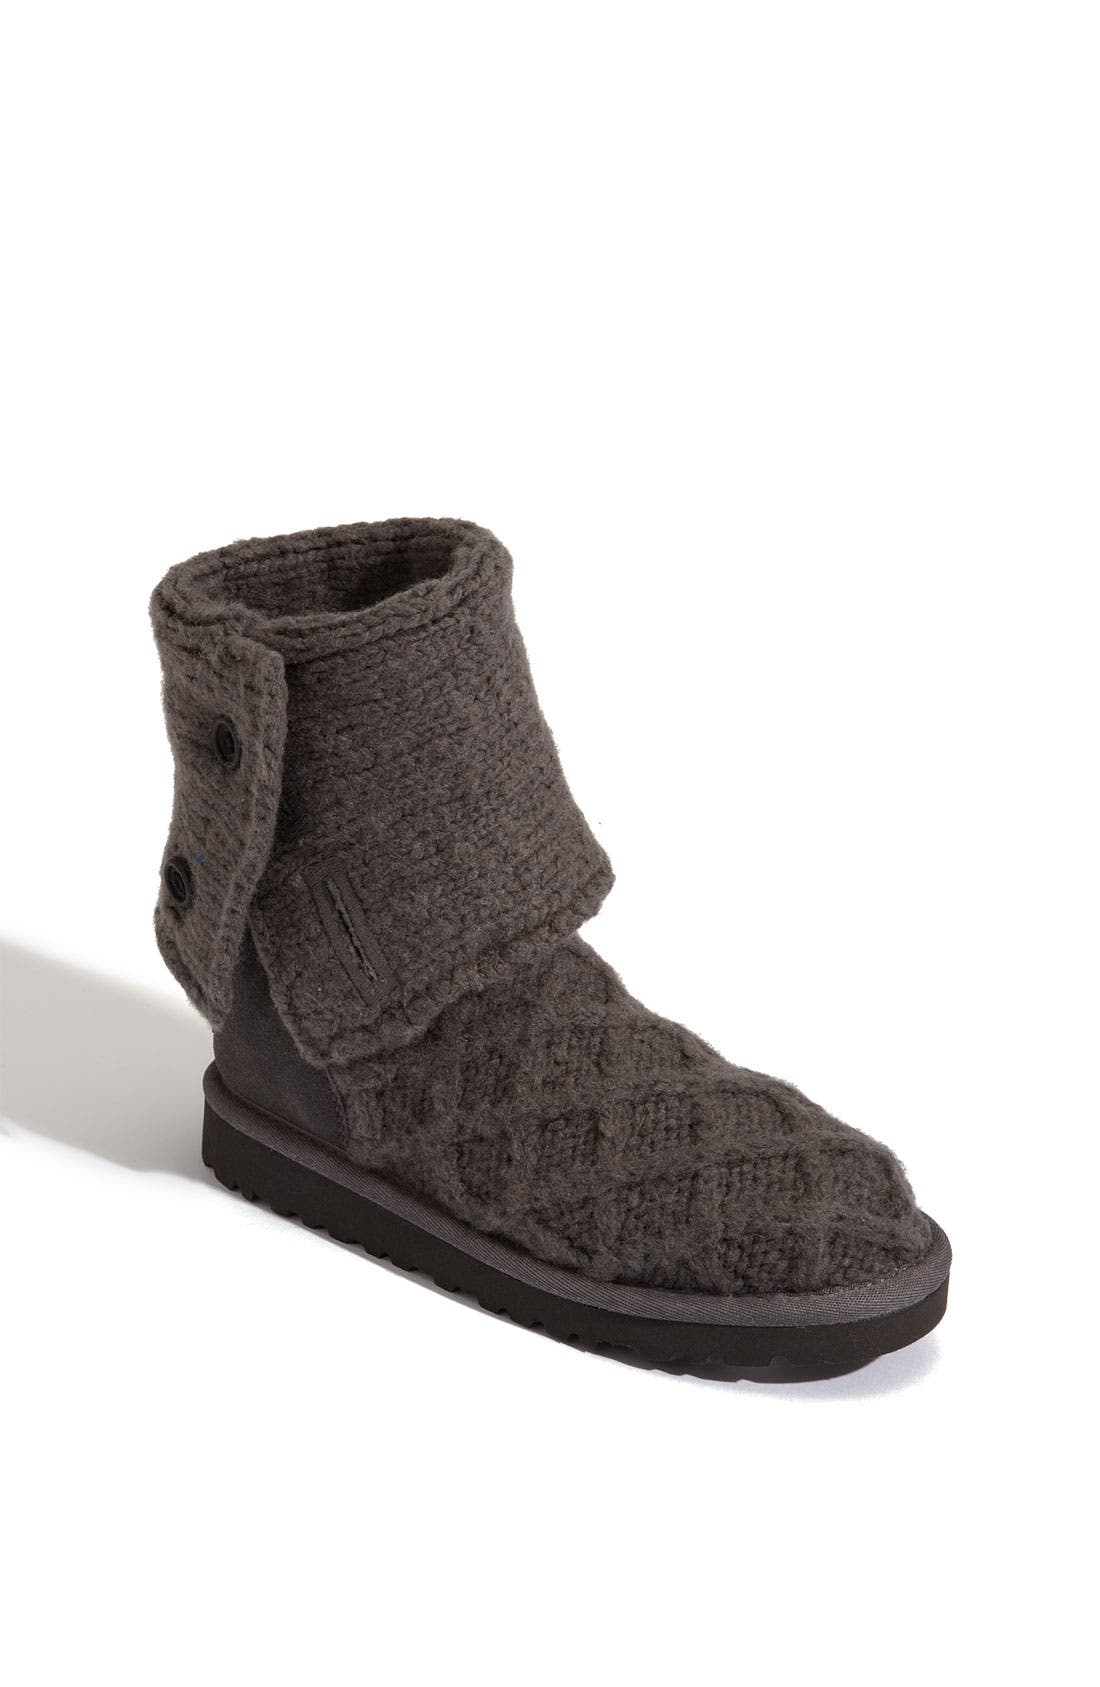 Alternate Image 1 Selected - UGG® Australia 'Lattice Cardy' Boot (Toddler, Little Kid & Big Kid)